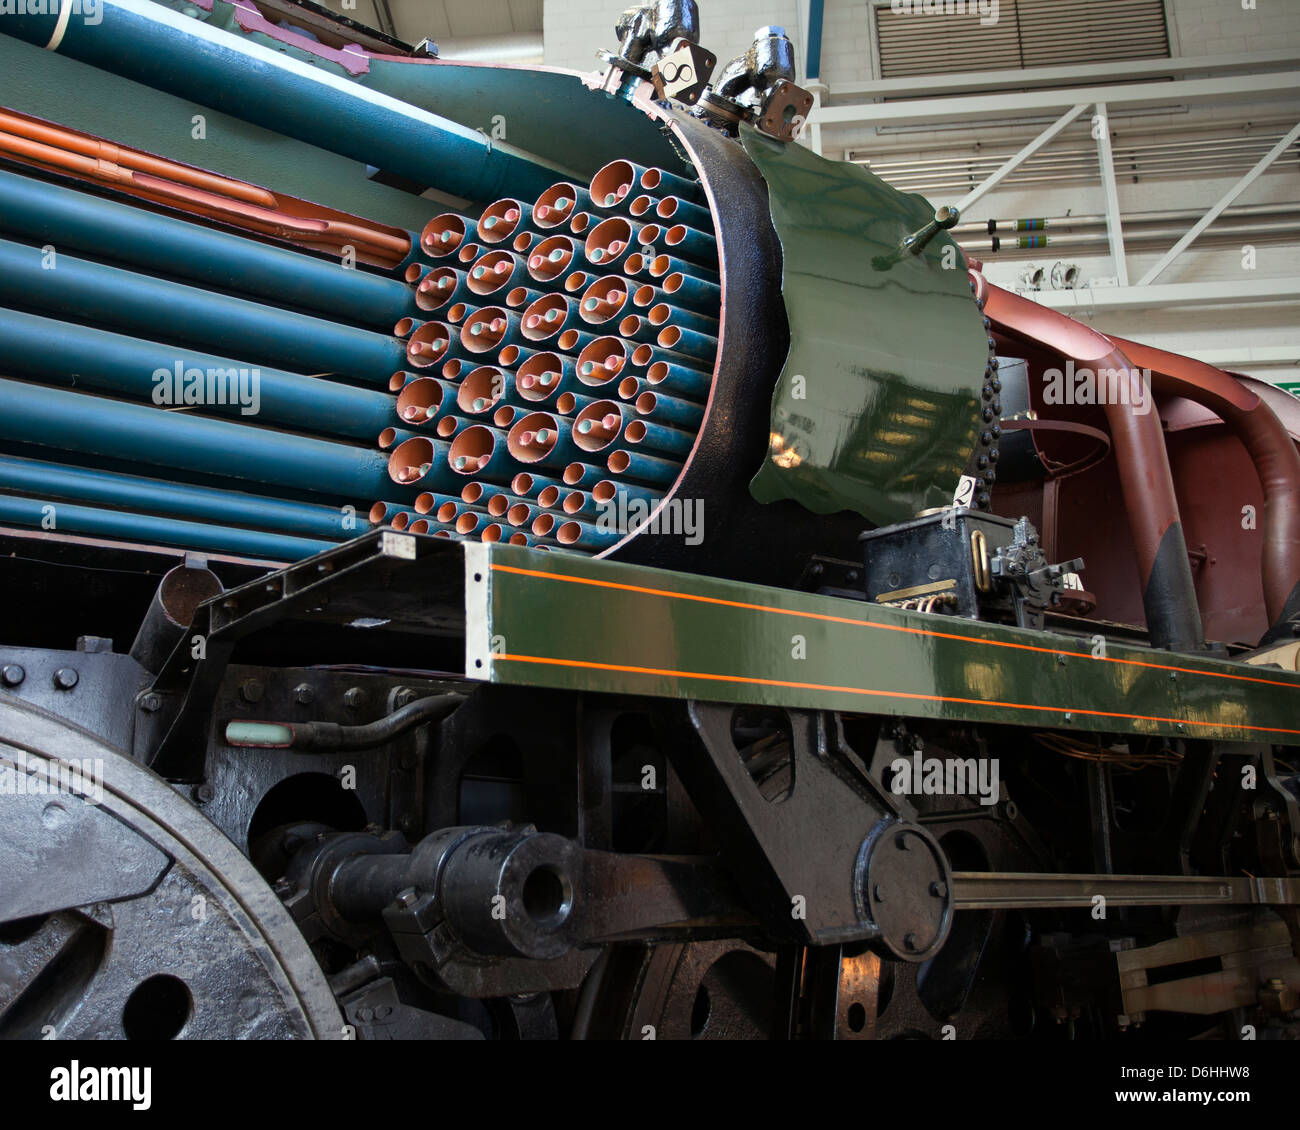 Steam Engine Boiler Stock Photos & Steam Engine Boiler Stock Images ...